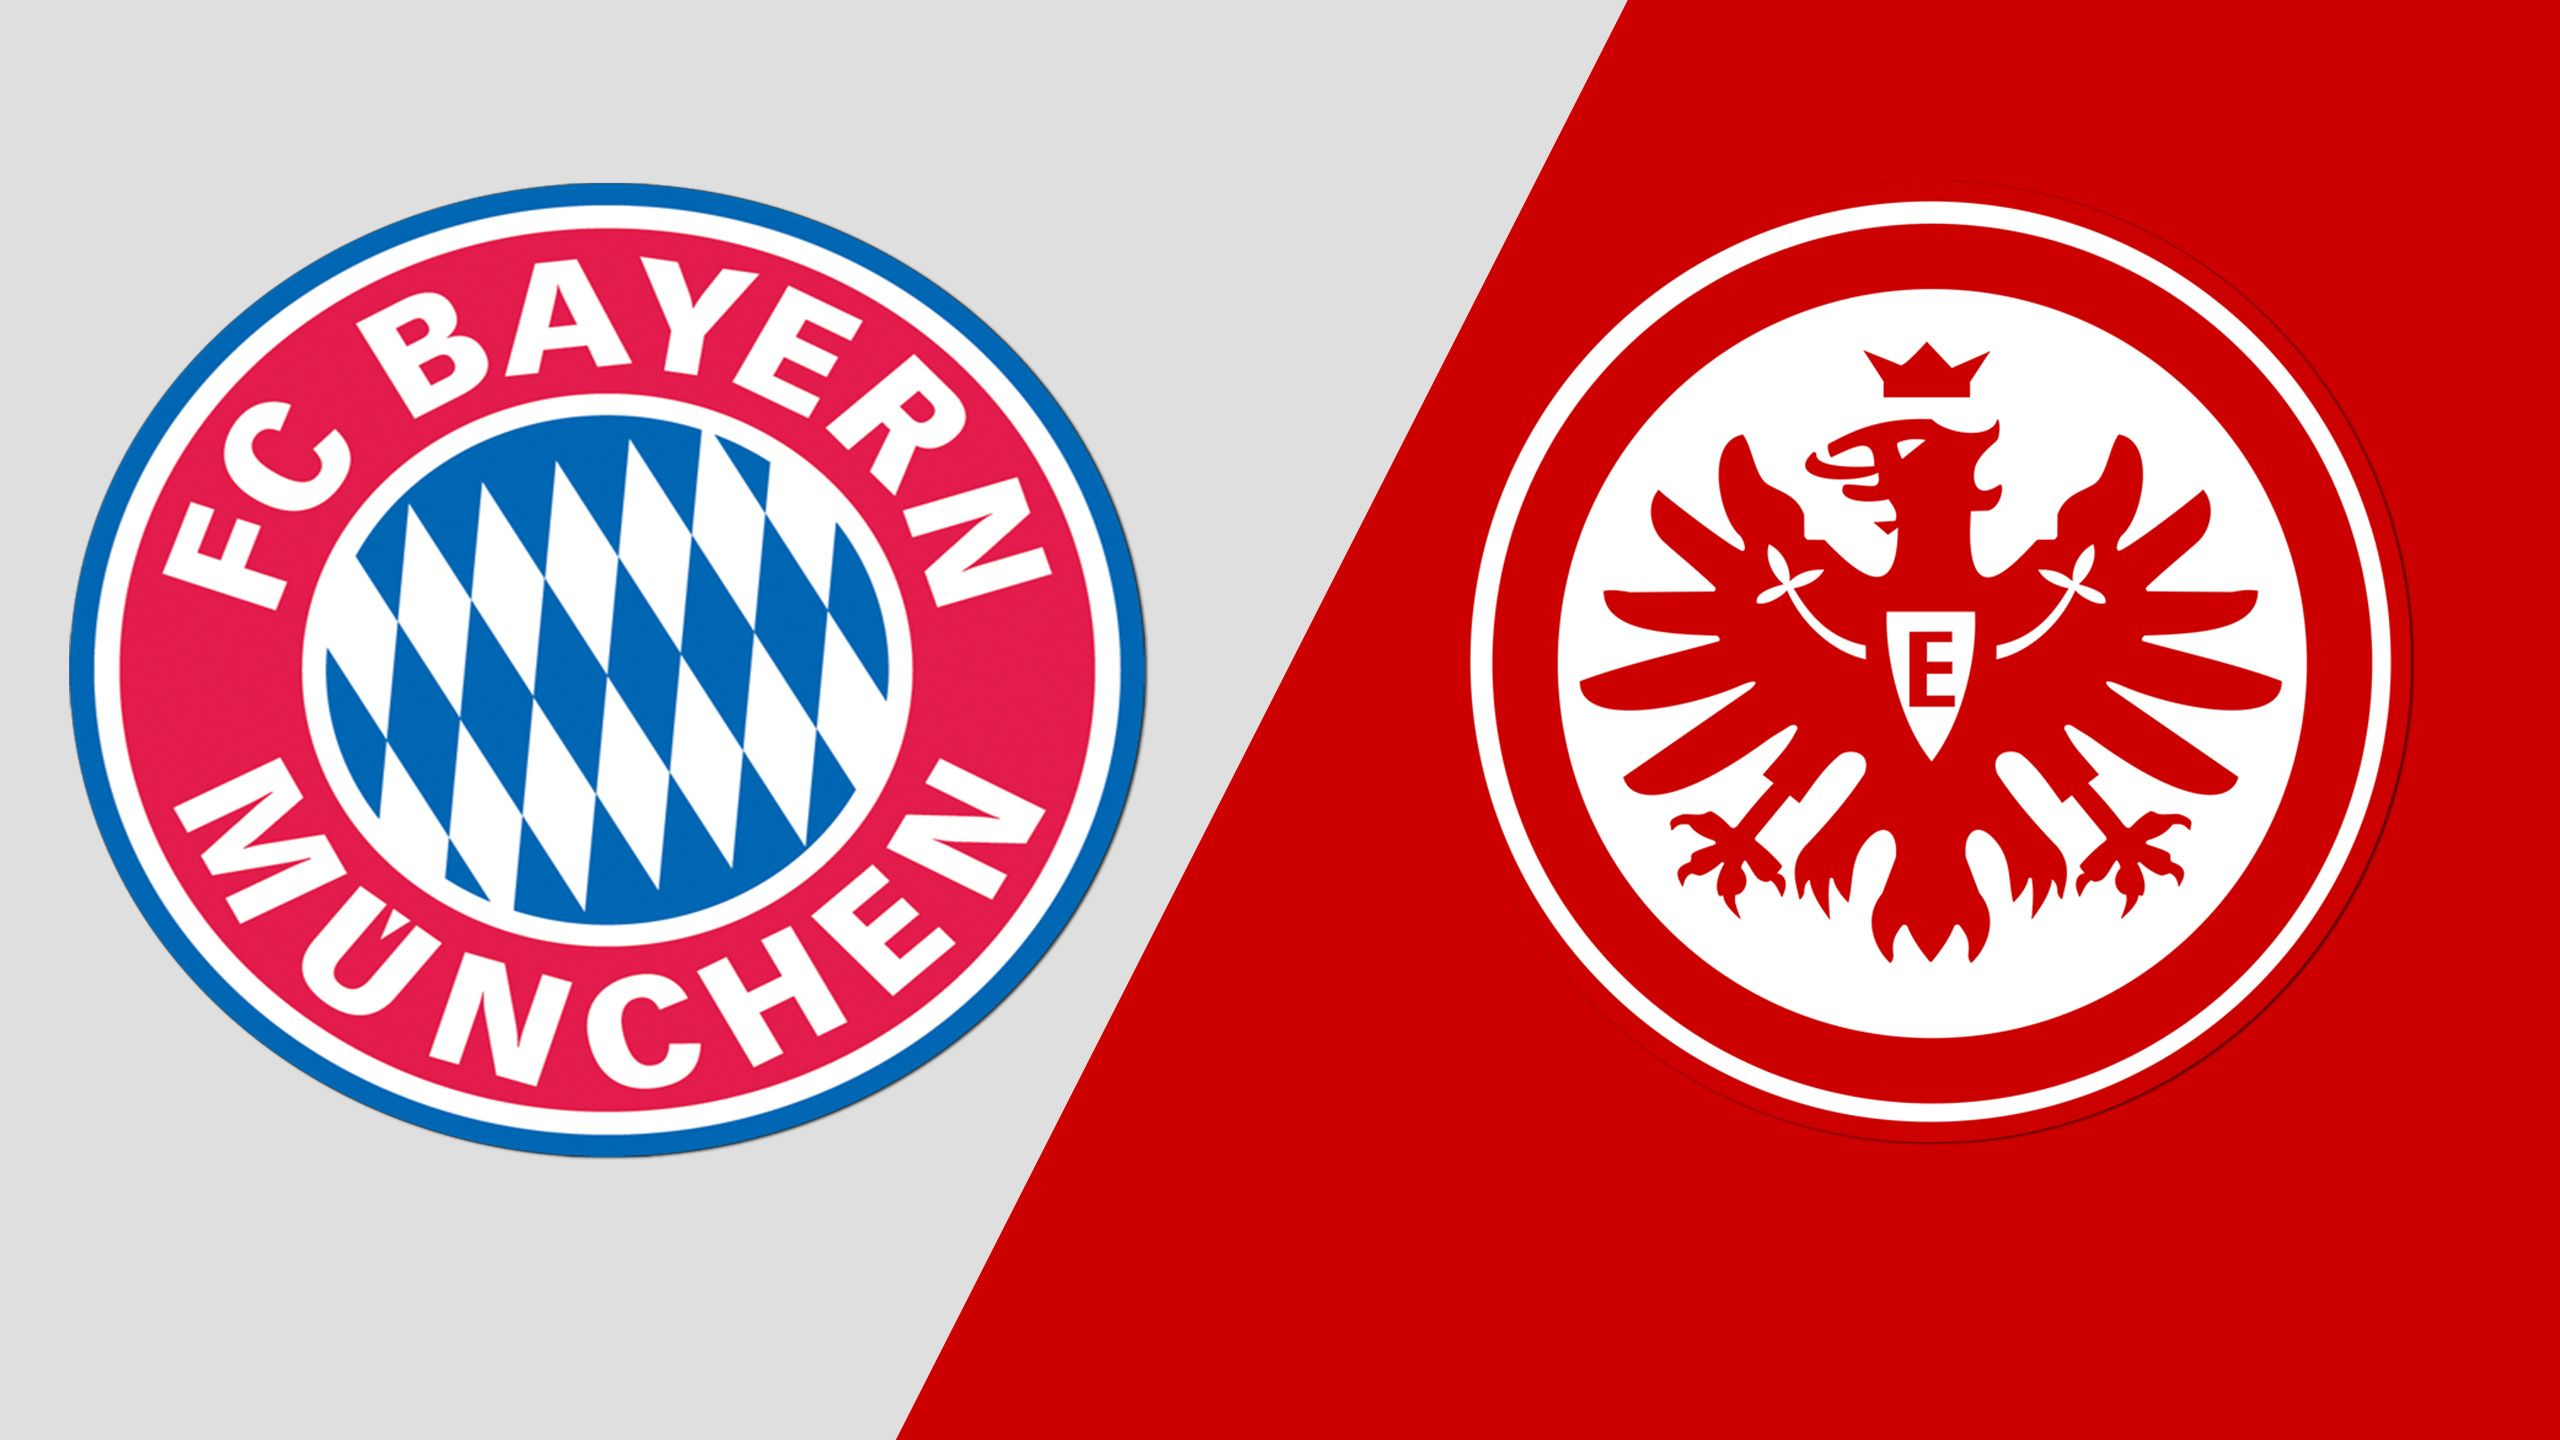 In Spanish - Bayern Munich vs. Eintracht Frankfurt (Final) (re-air)